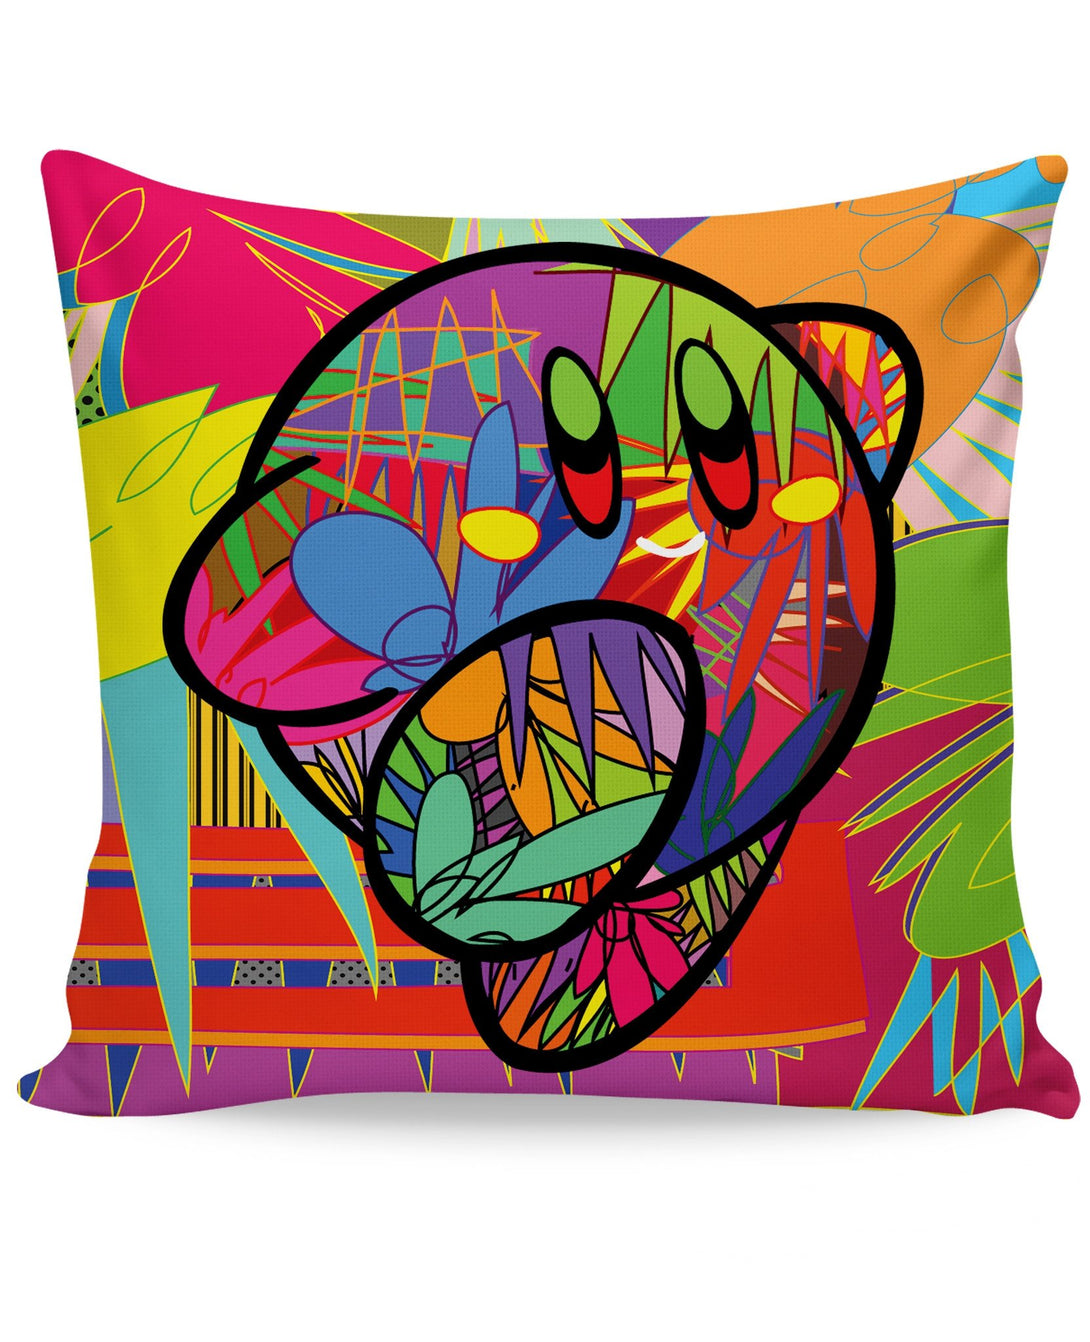 Dashing Away Couch Pillow